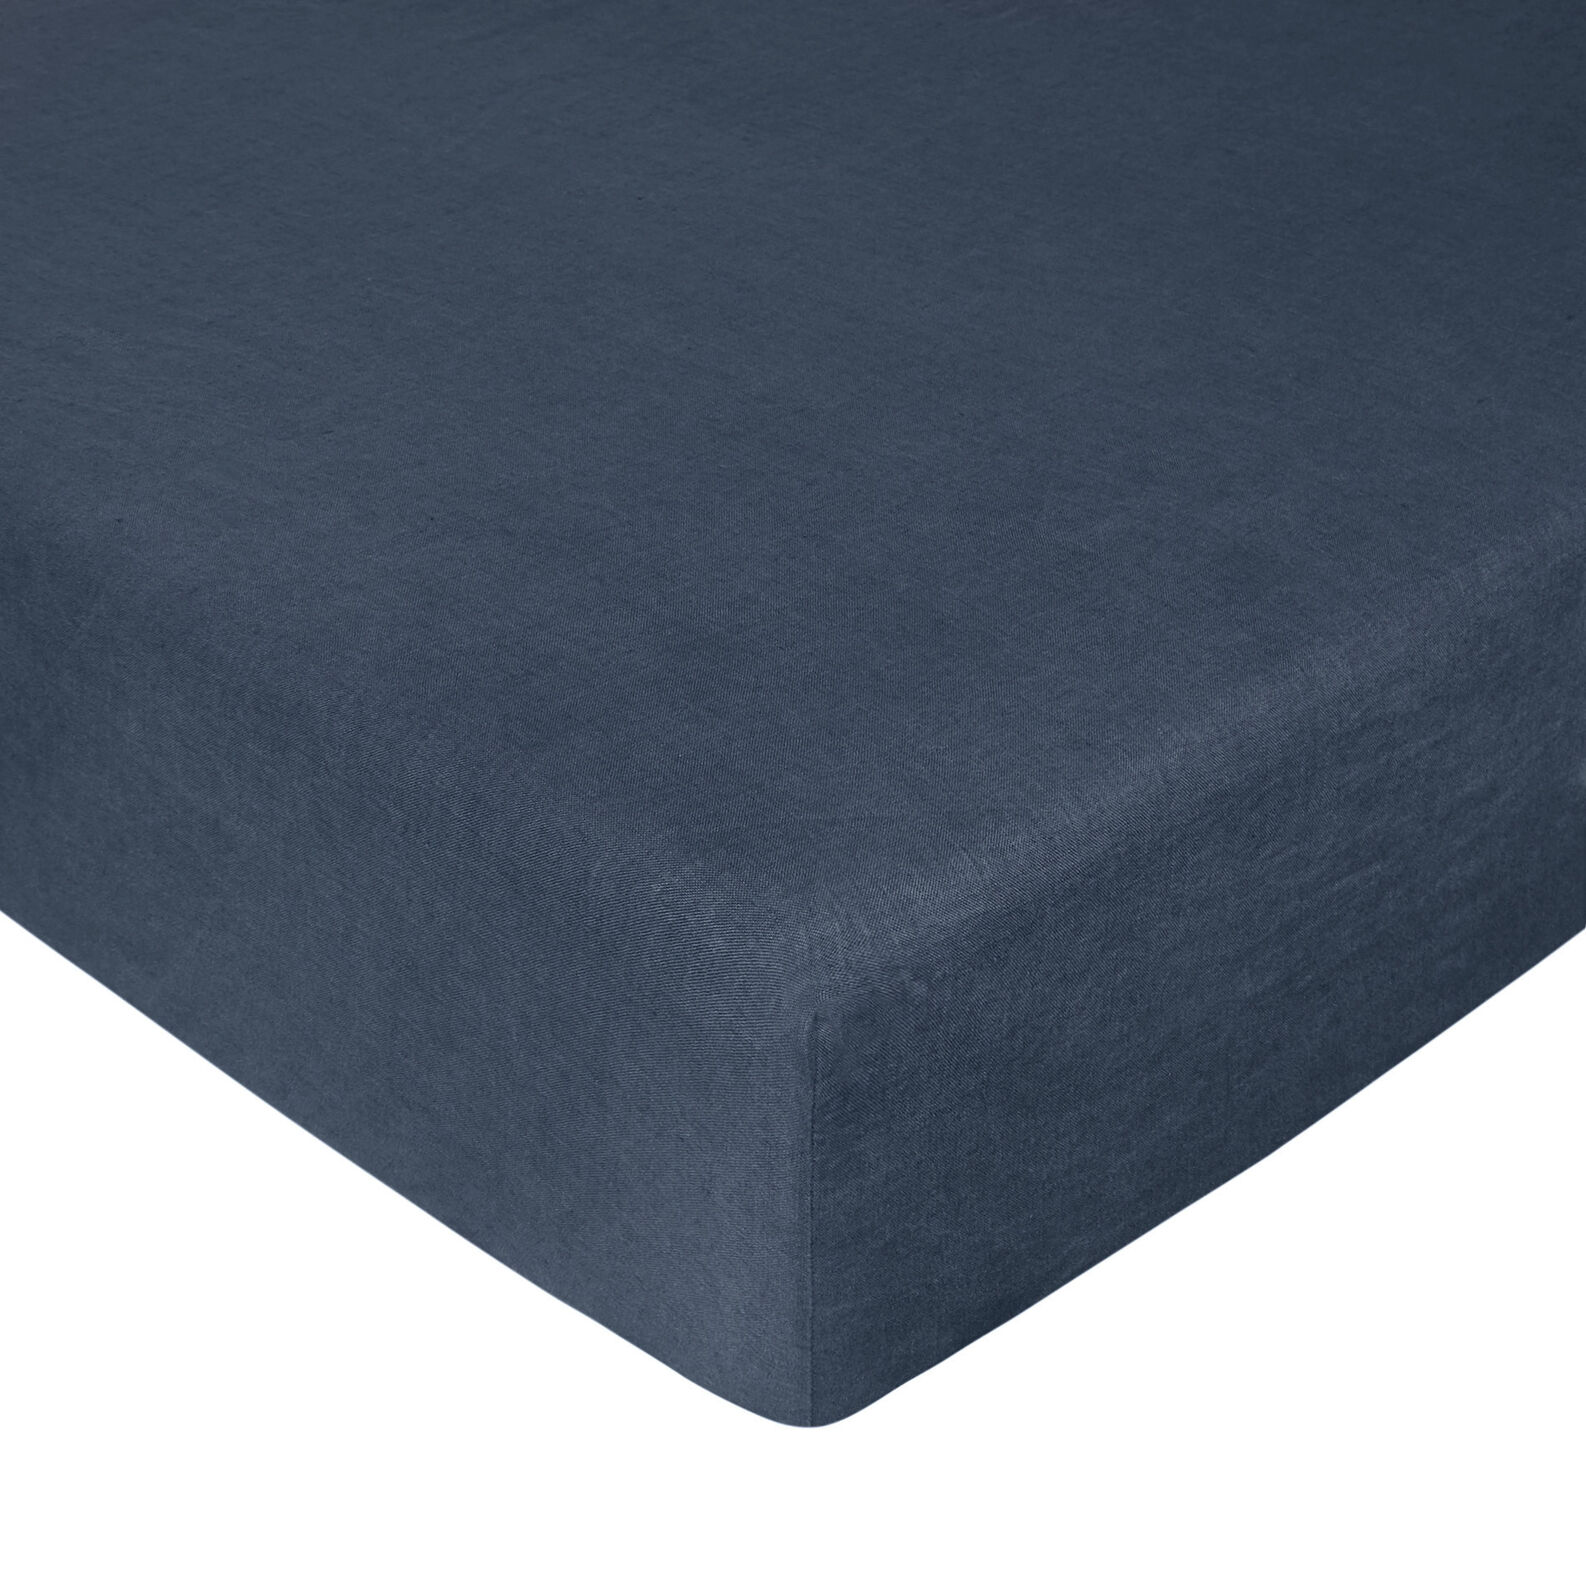 Interno 11 fitted sheet in high-quality linen